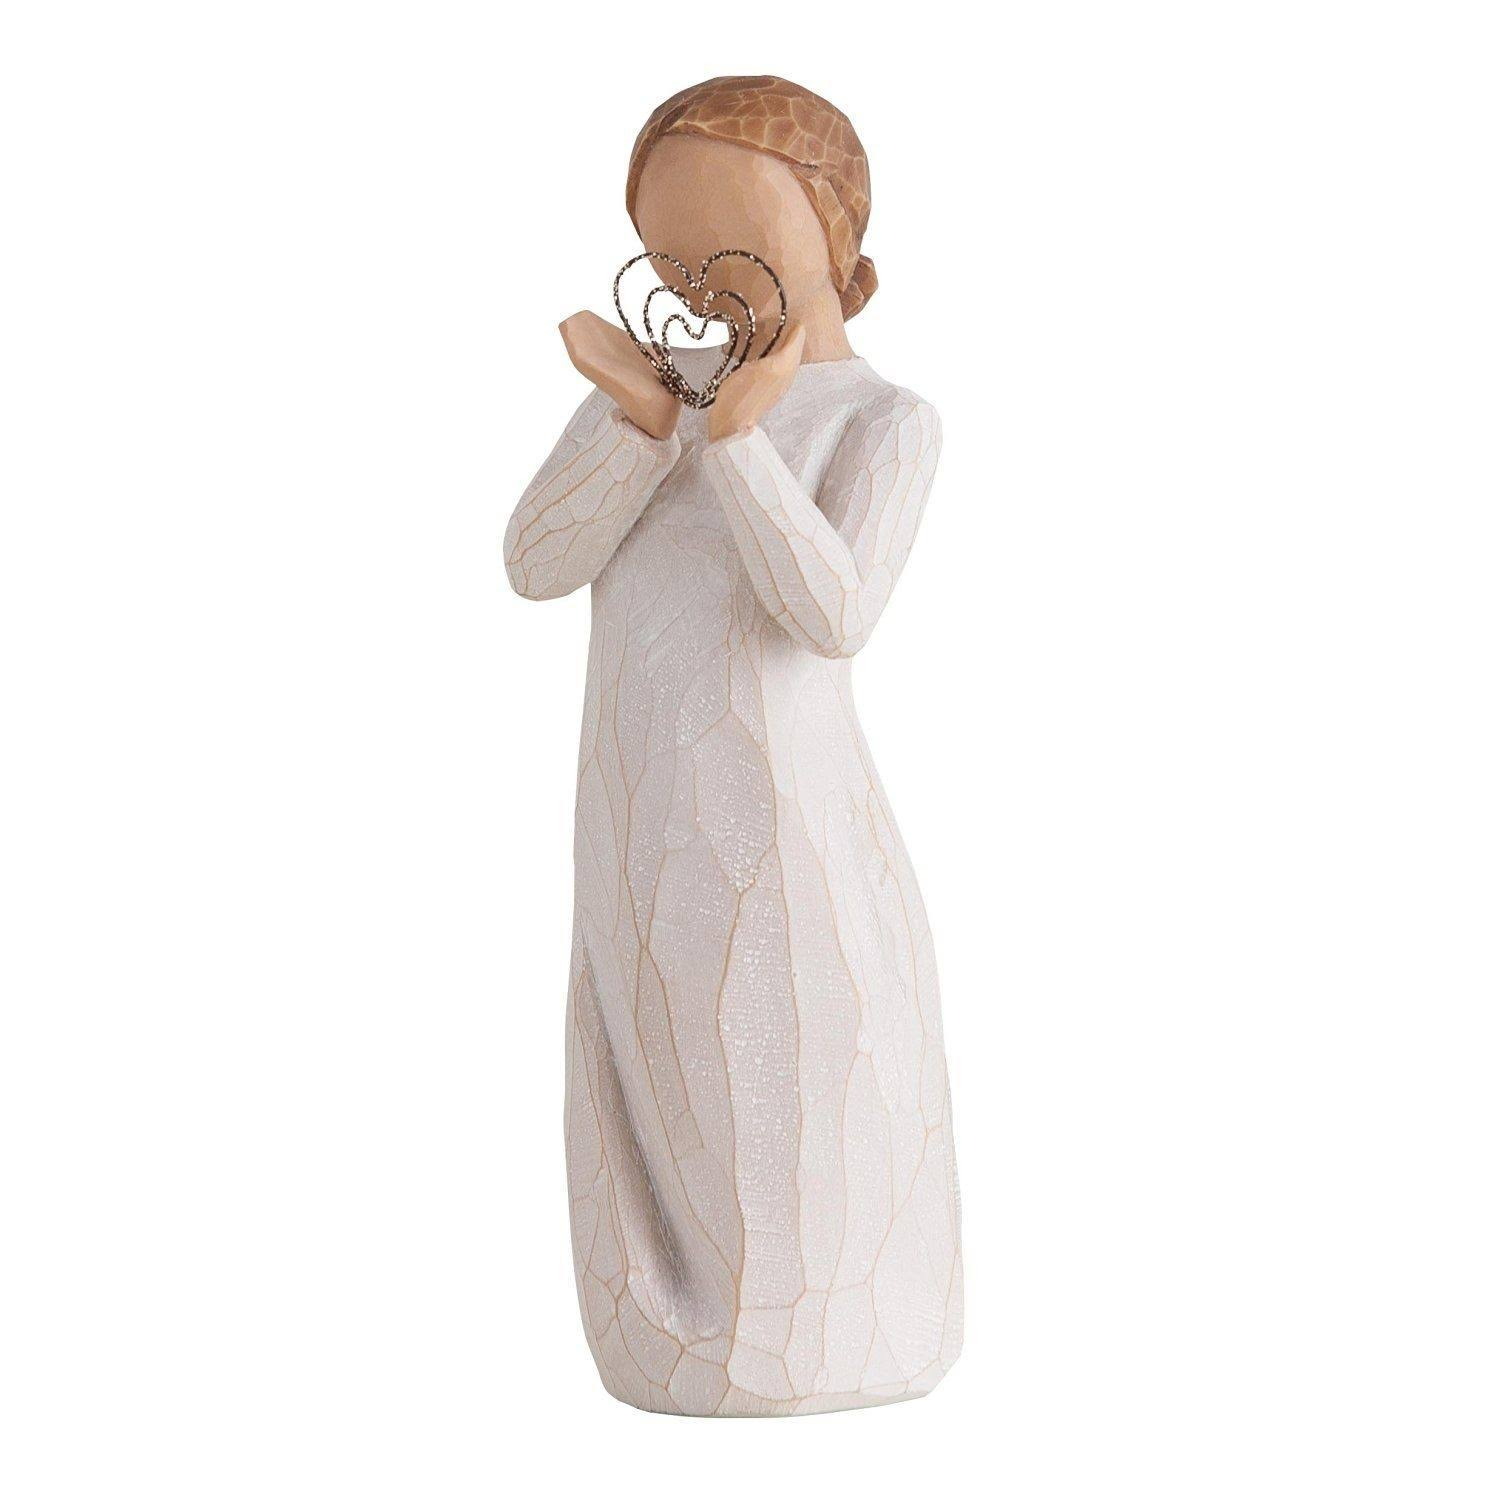 Willow Tree Figurine - Lots of Love Holding Hearts